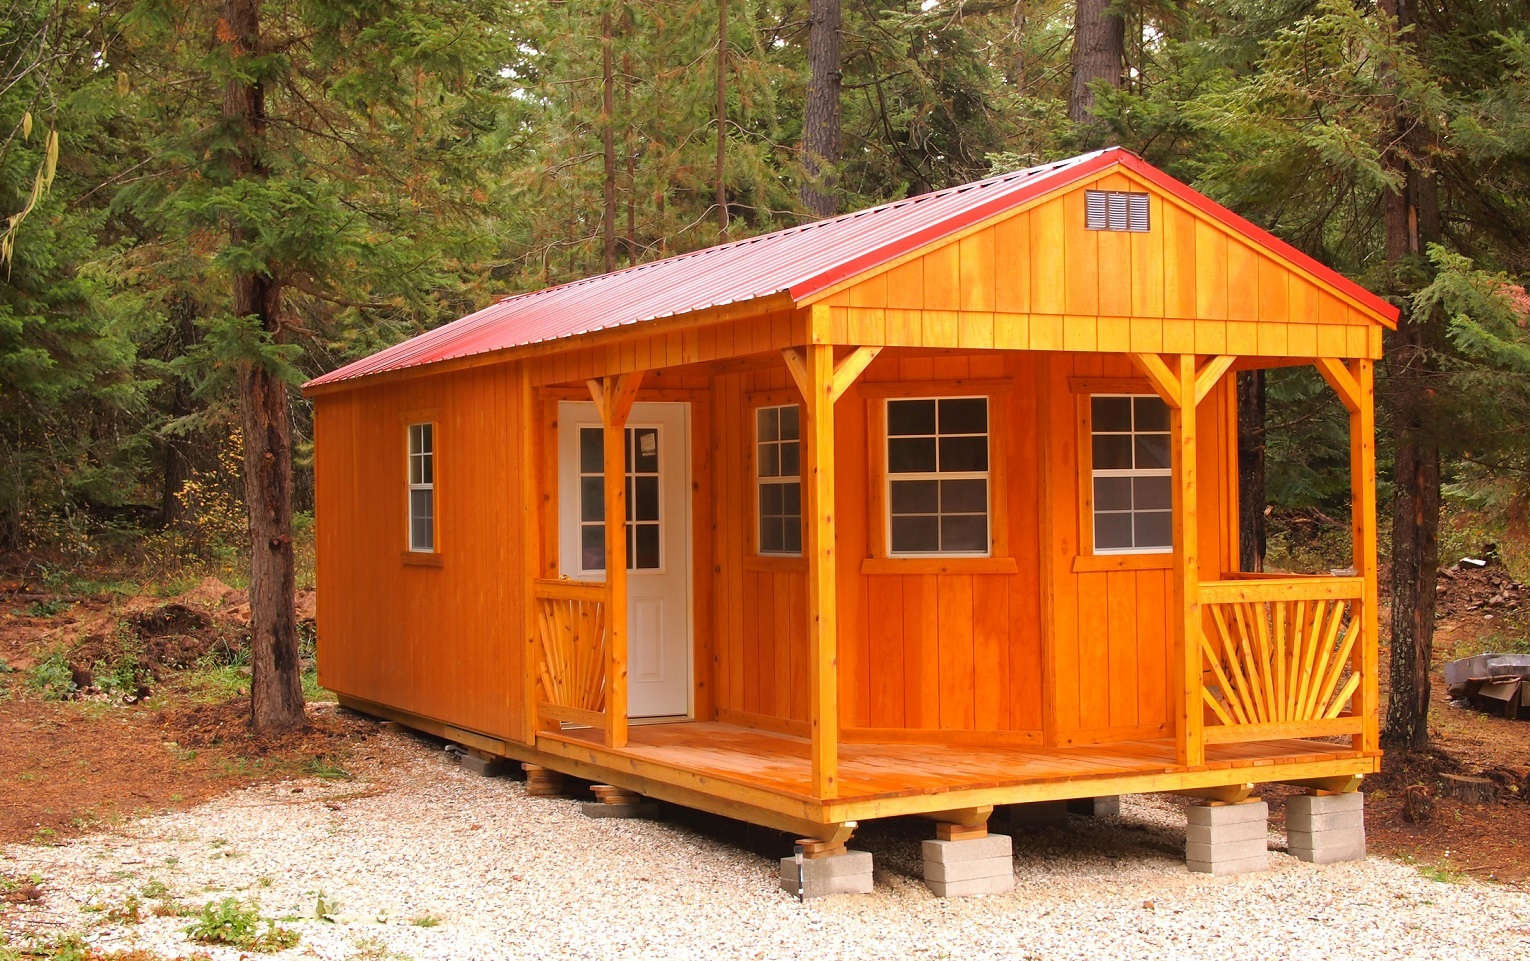 Modern tiny home cabin nestled in woods photo.